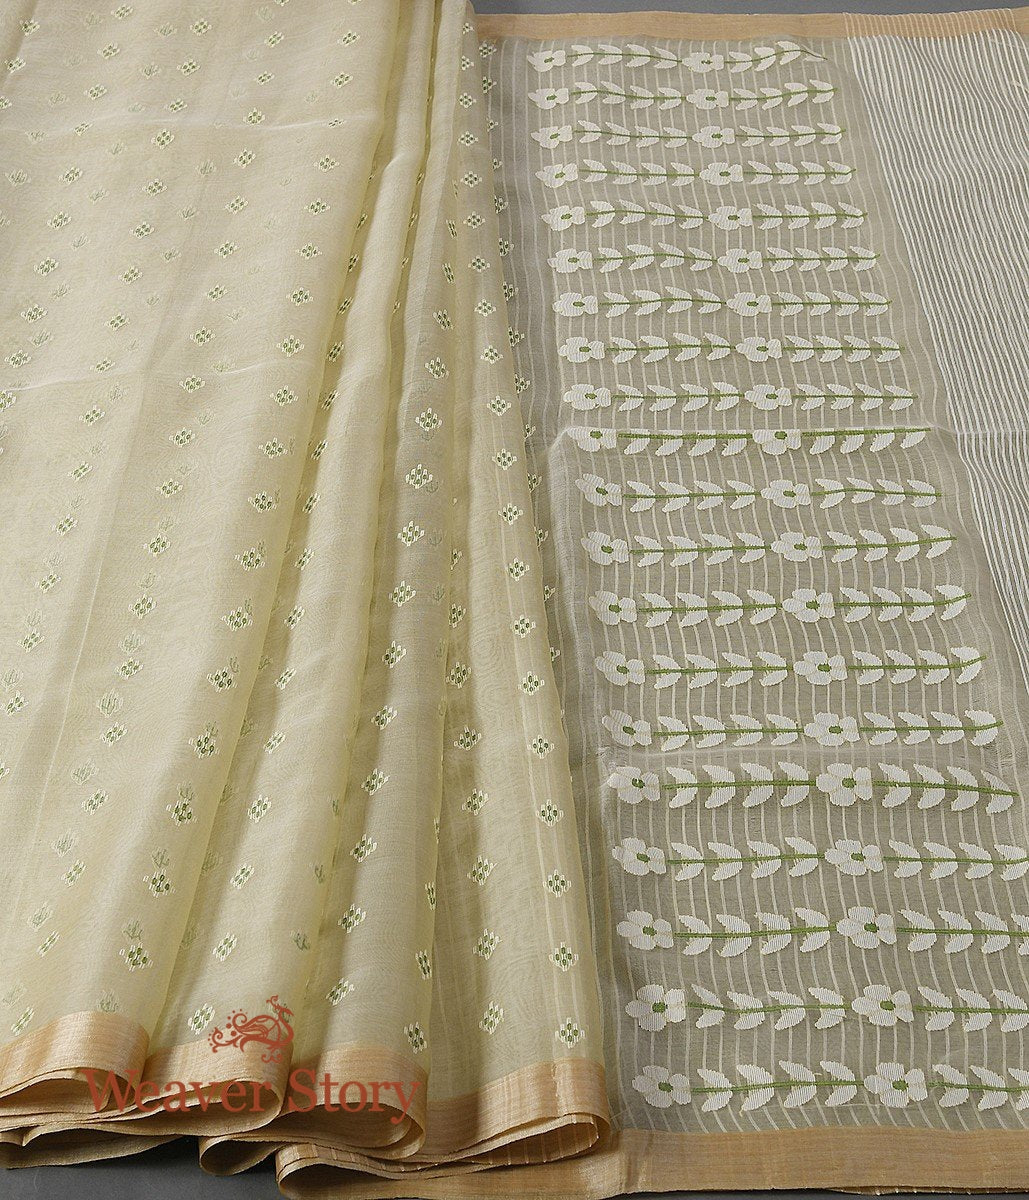 Handwoven Pistachio Green Dhakai Jamdani Saree with White Booti